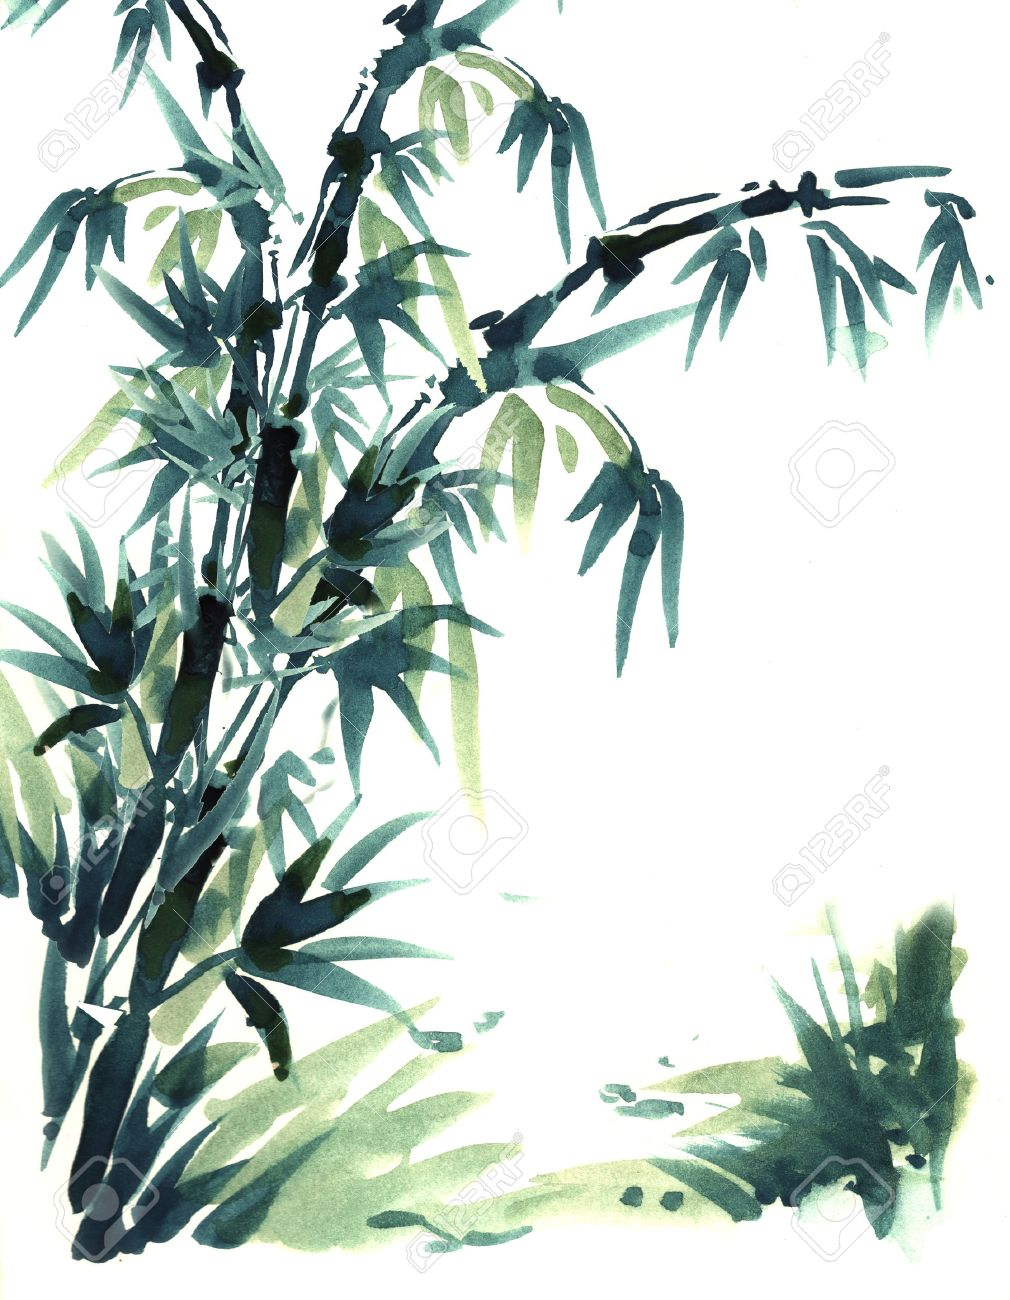 Chinese brush painting bamboo.Water color painting in chinese brush style. With beautiful black and green color of bamboo. - 24075275